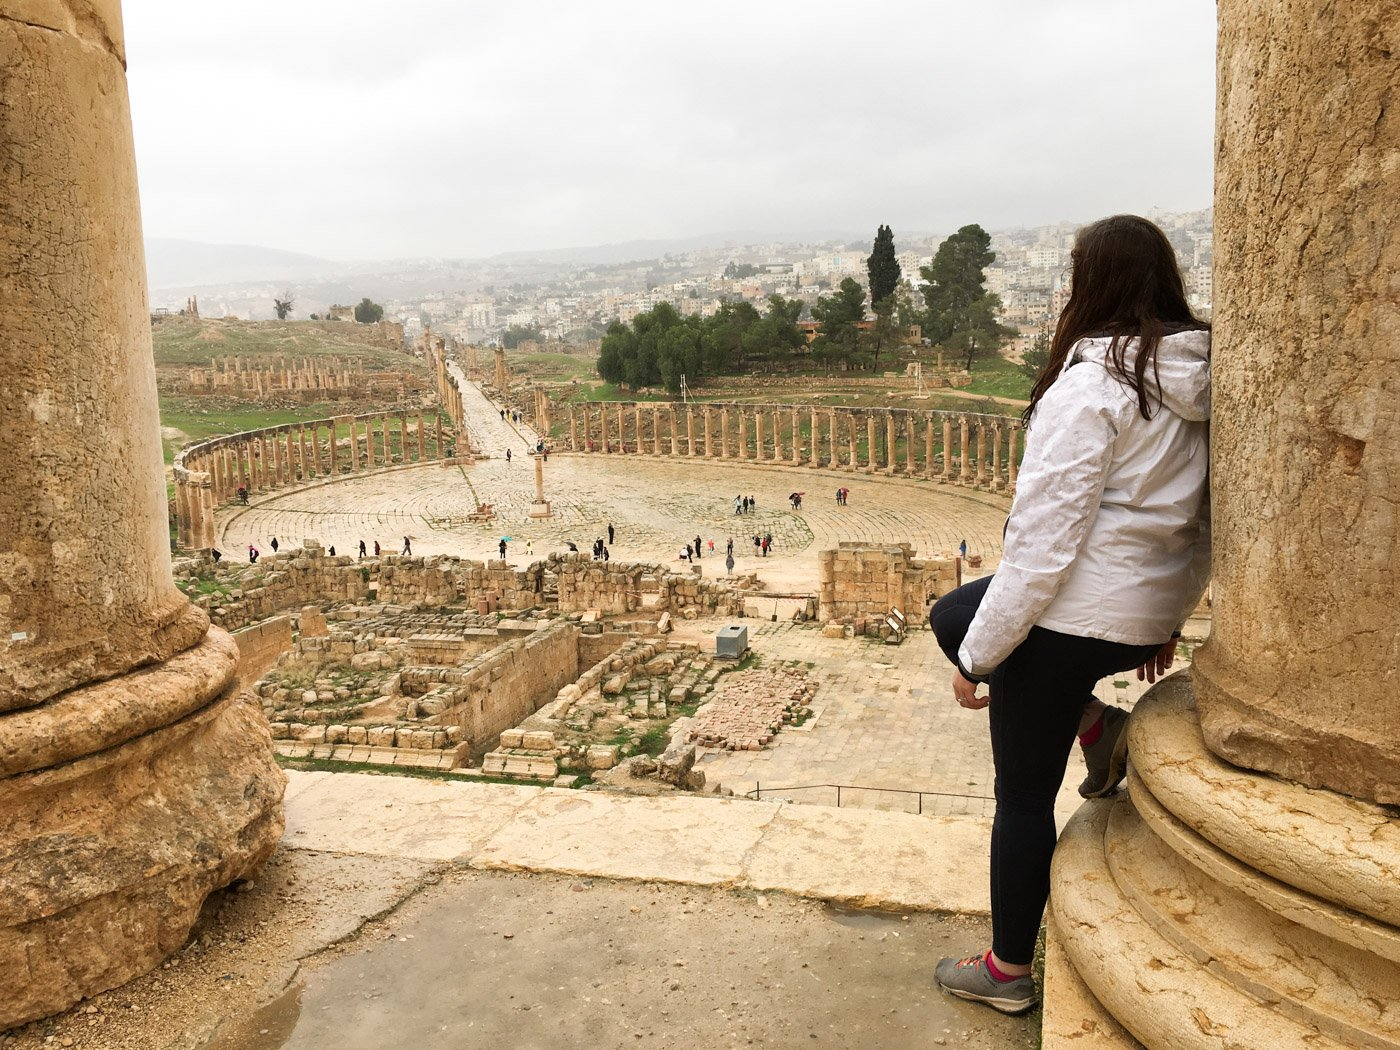 If you are visiting Israel and are thinking about going over to Jordan for a few days, I definitely recommend joining a tour. Here's why you should take a tour from Israel to Jordan.